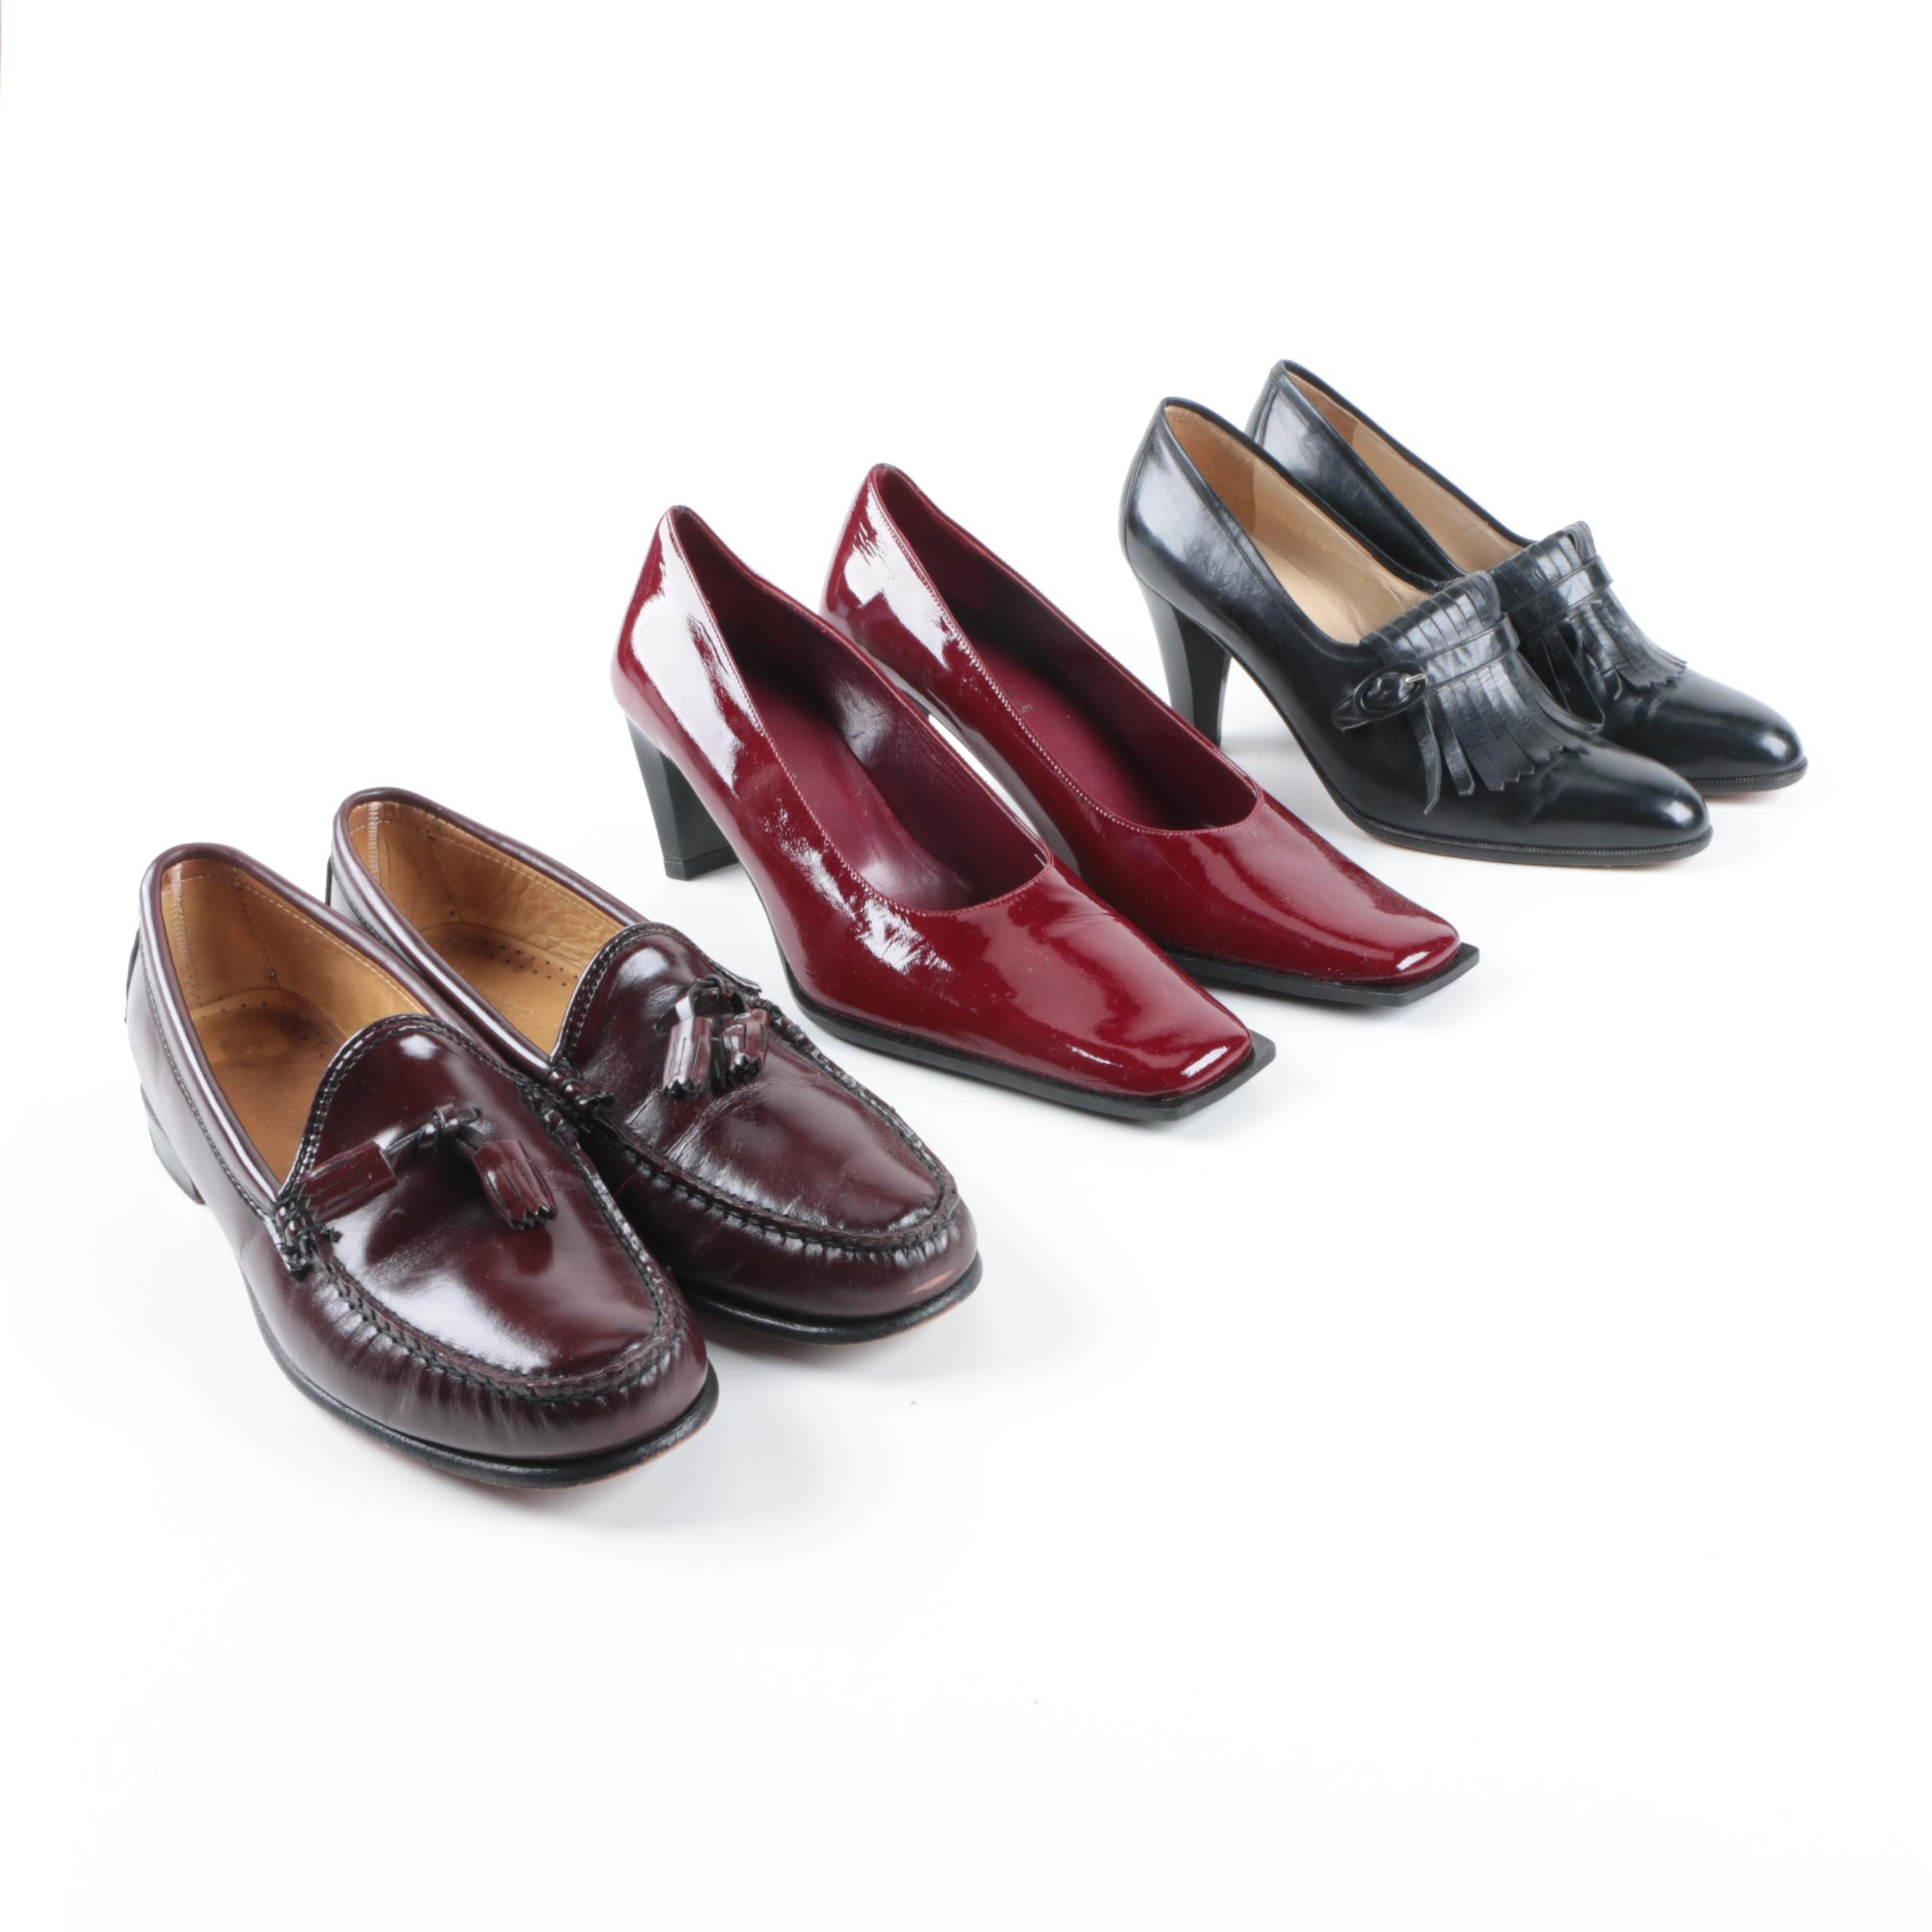 Women's Leather Loafers and Heels